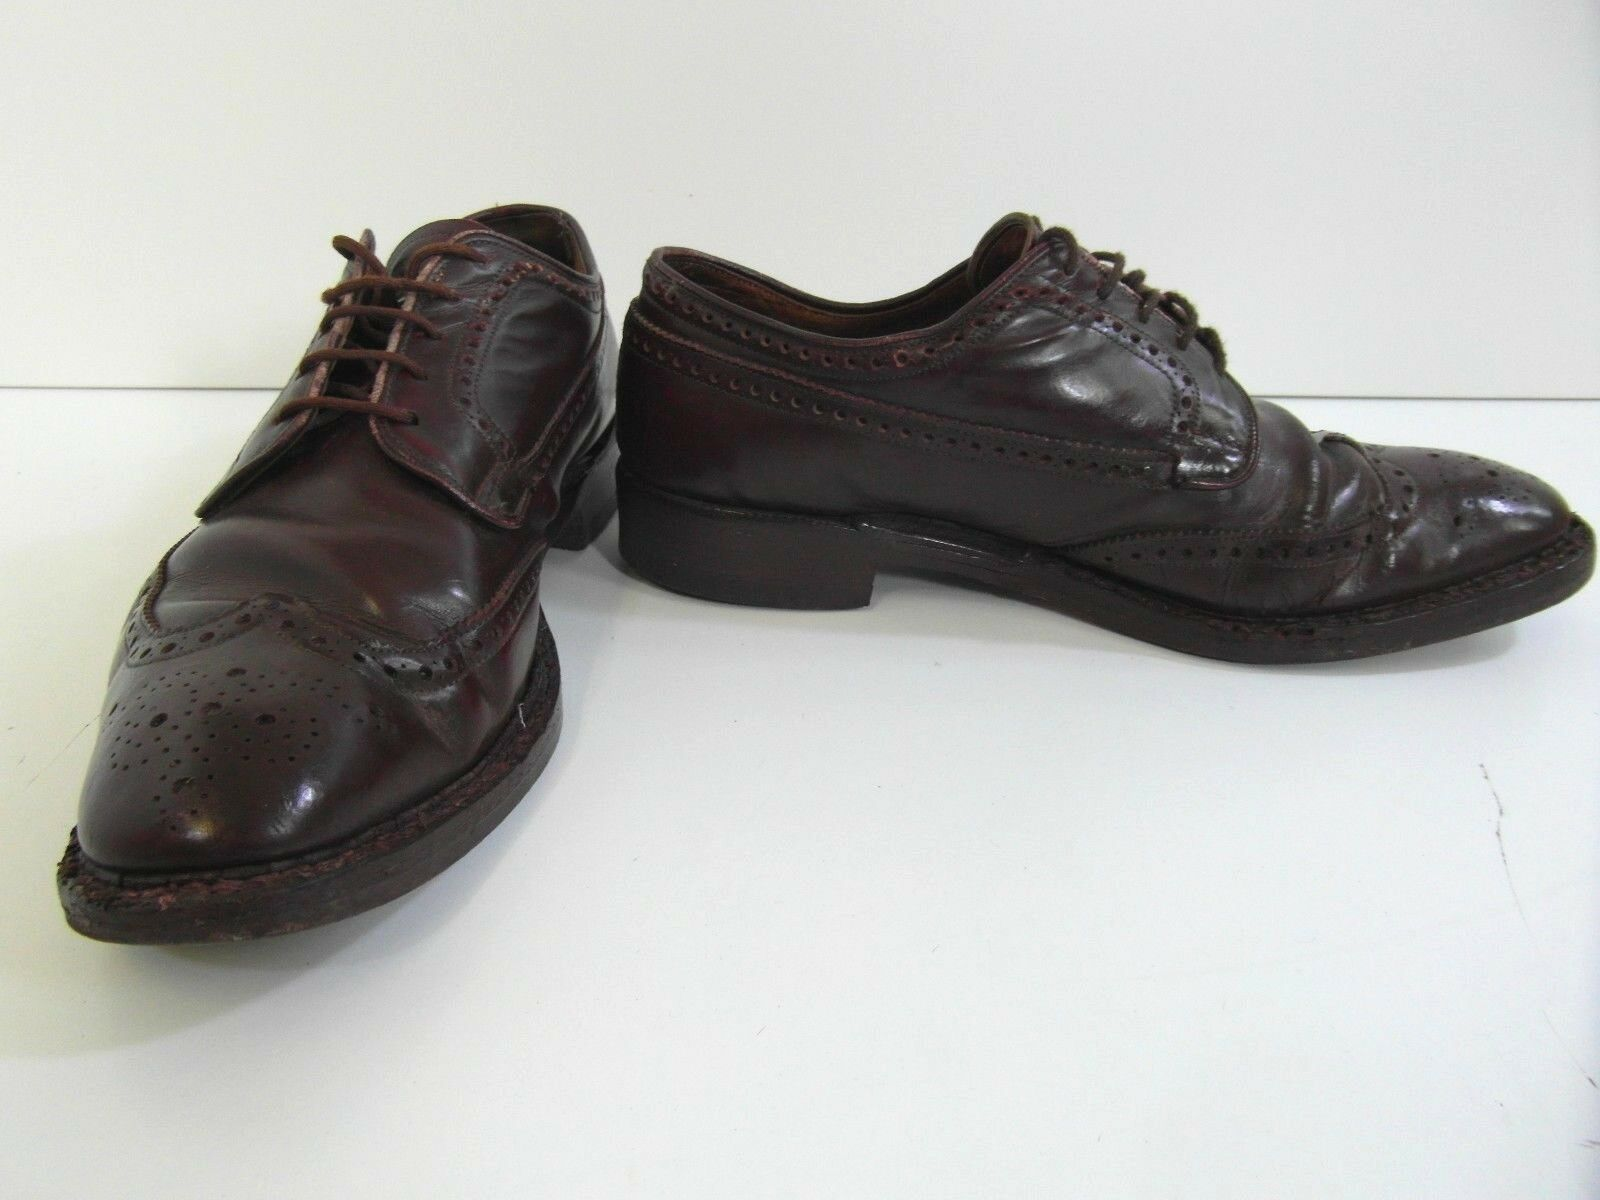 Herren CUSTOM GRADE BROWN LEATHER CHURCHS HANDMADE BROGUE BROGUE BROGUE Schuhe UK9 e770cd